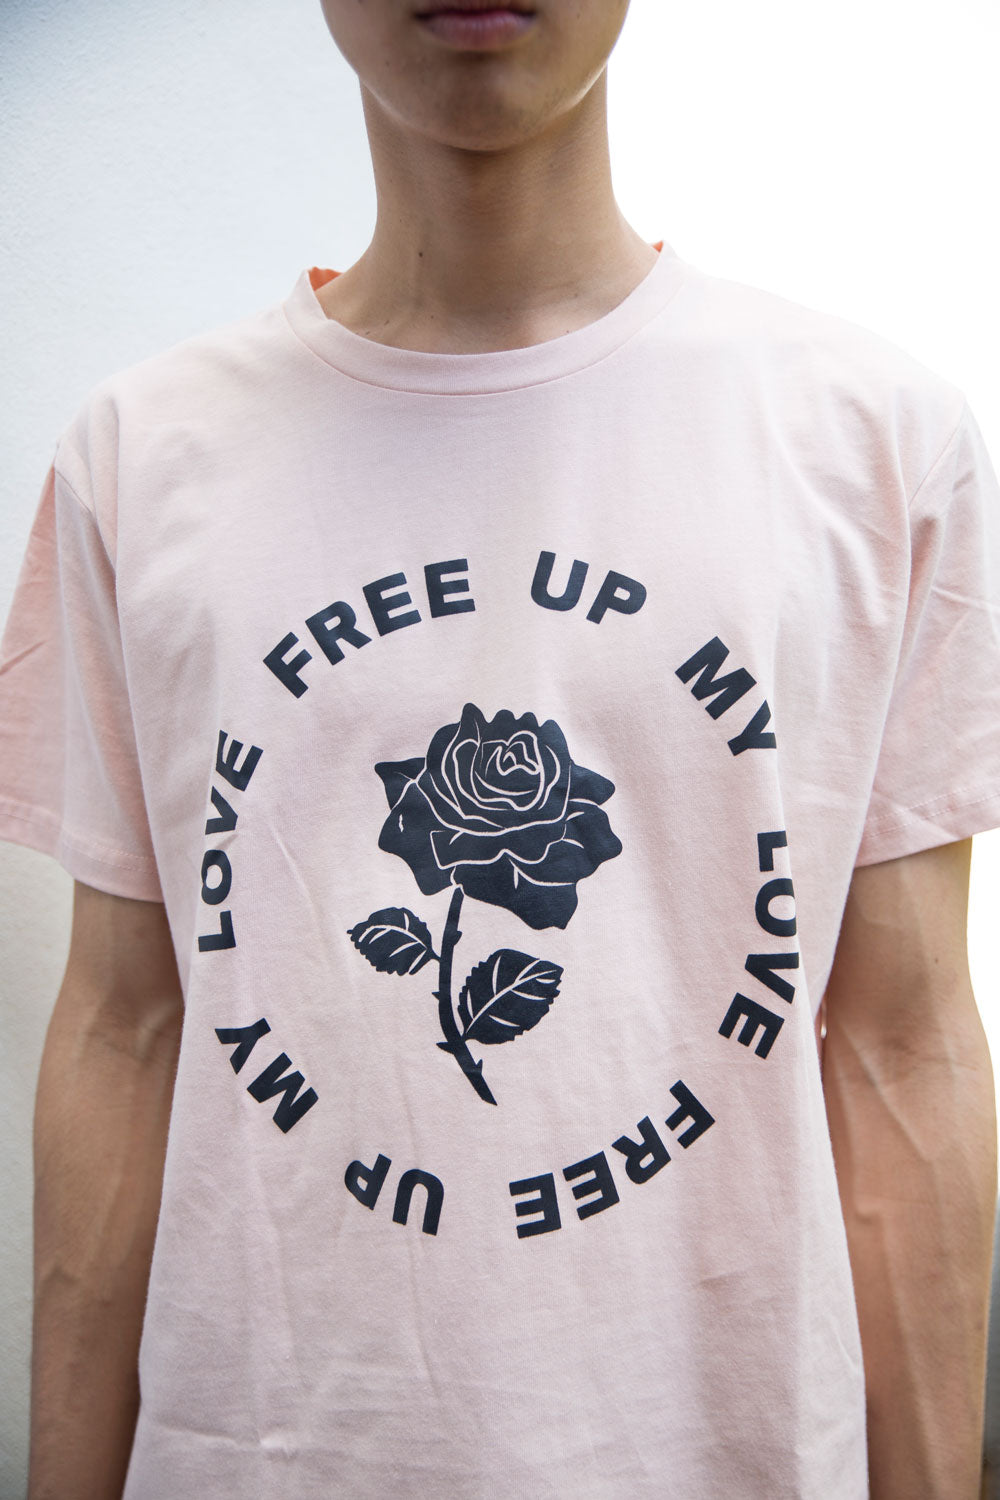 FREE UP MY LOVE T-SHIRT